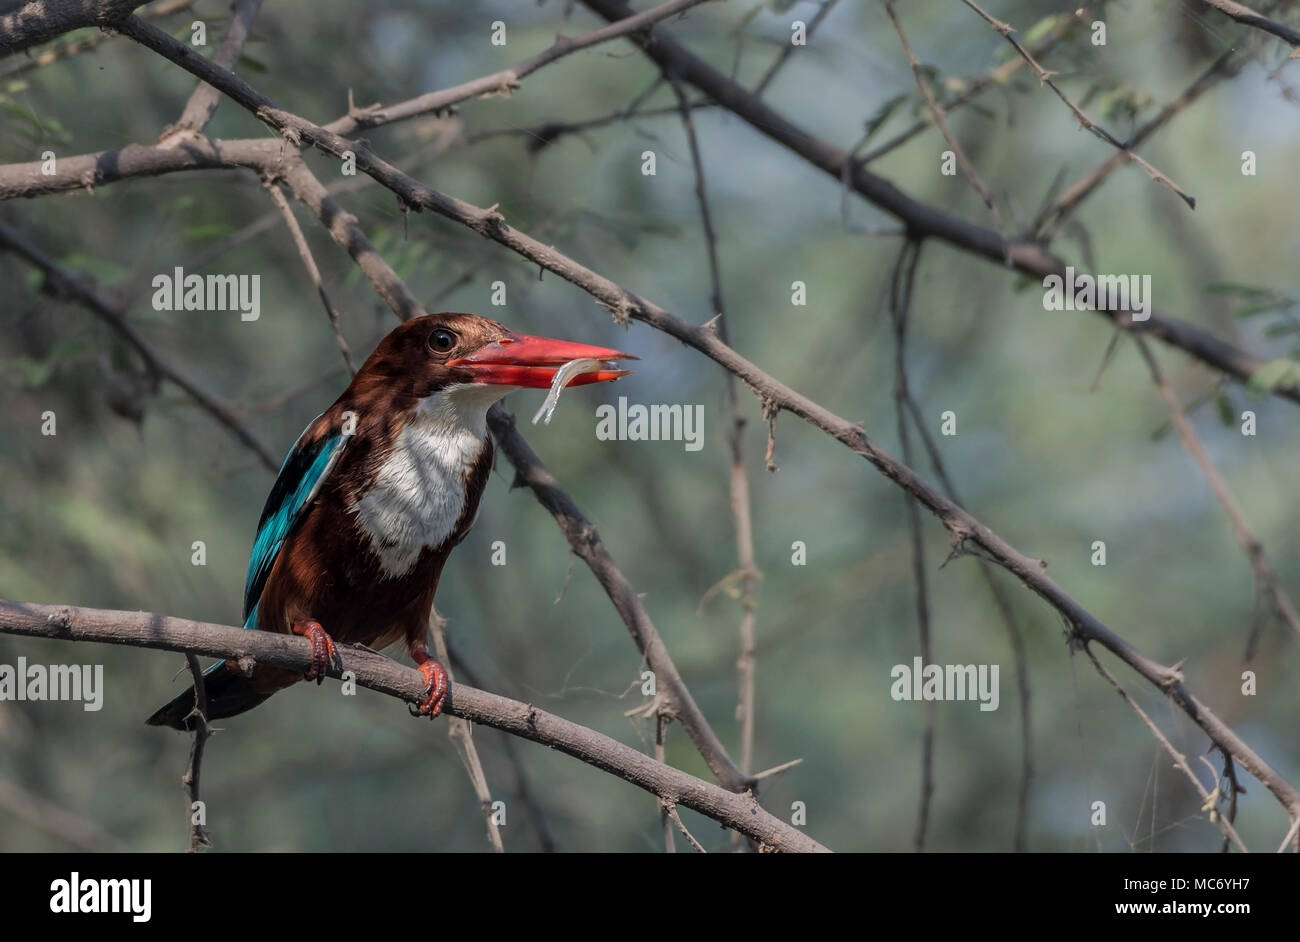 White-Throated Kingfisher (Halcyon smyrnensis) Eating Fish. - Stock Image